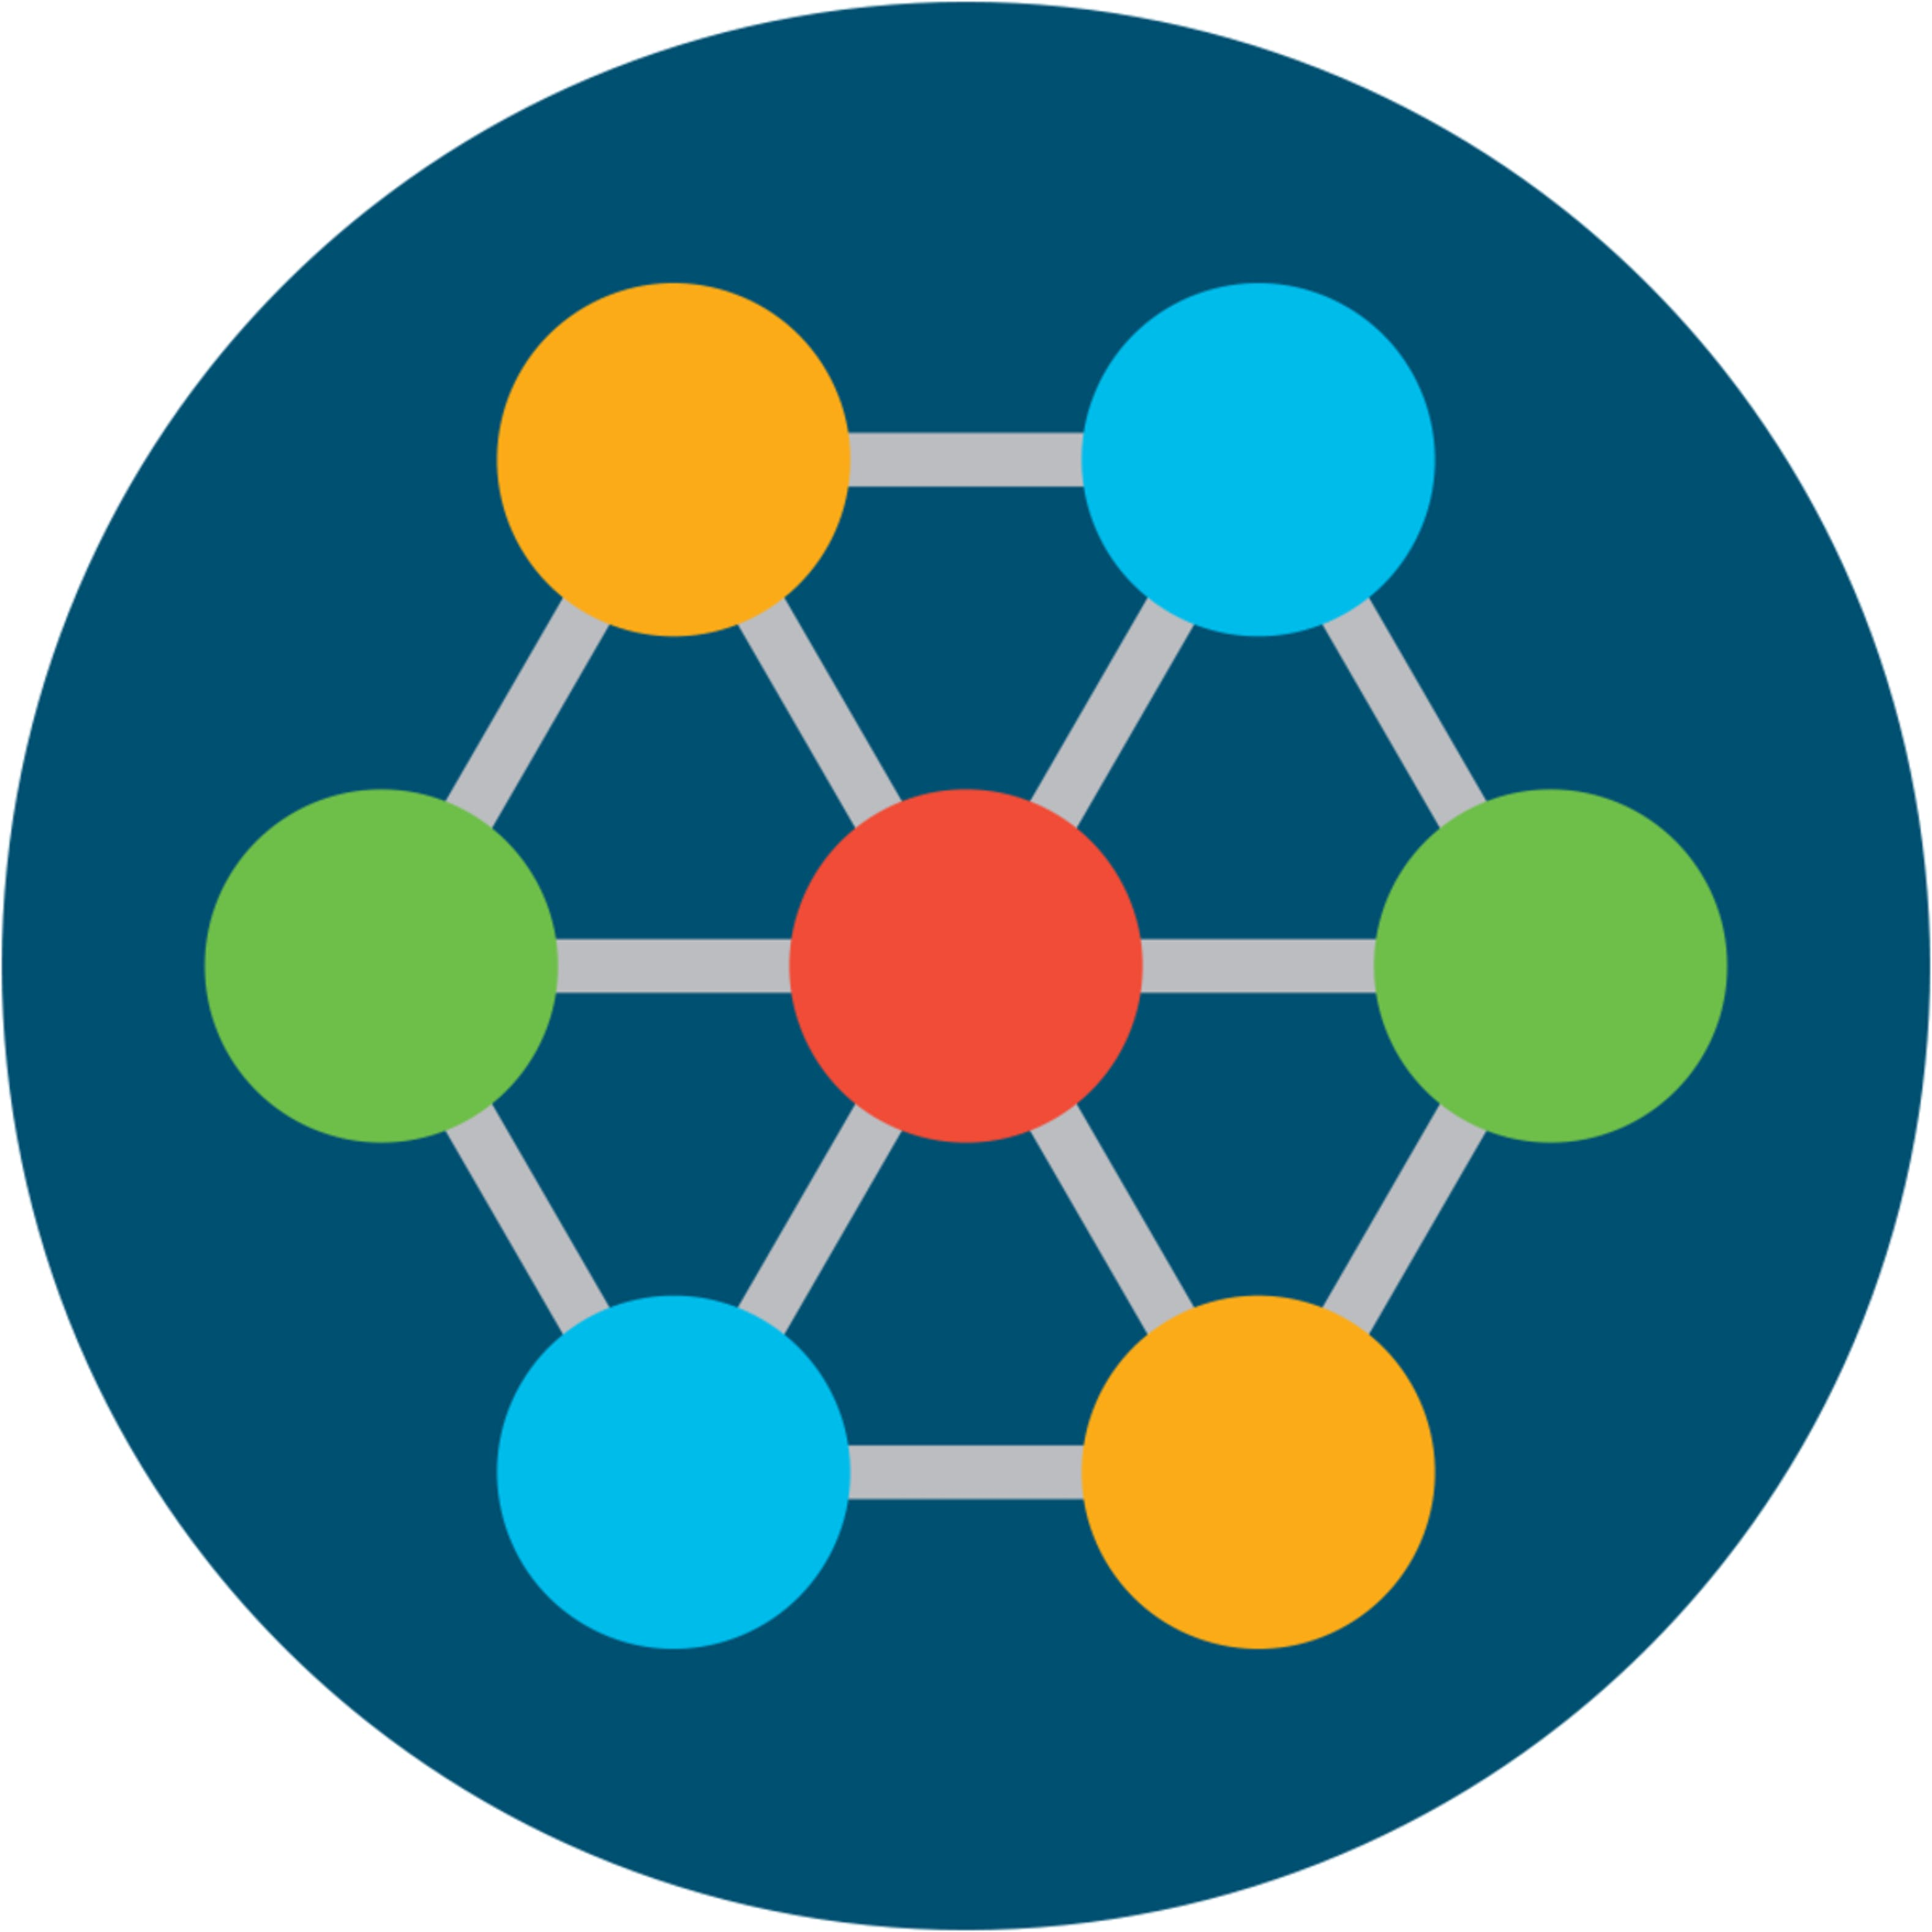 Data Communications and Network Services | Coursera